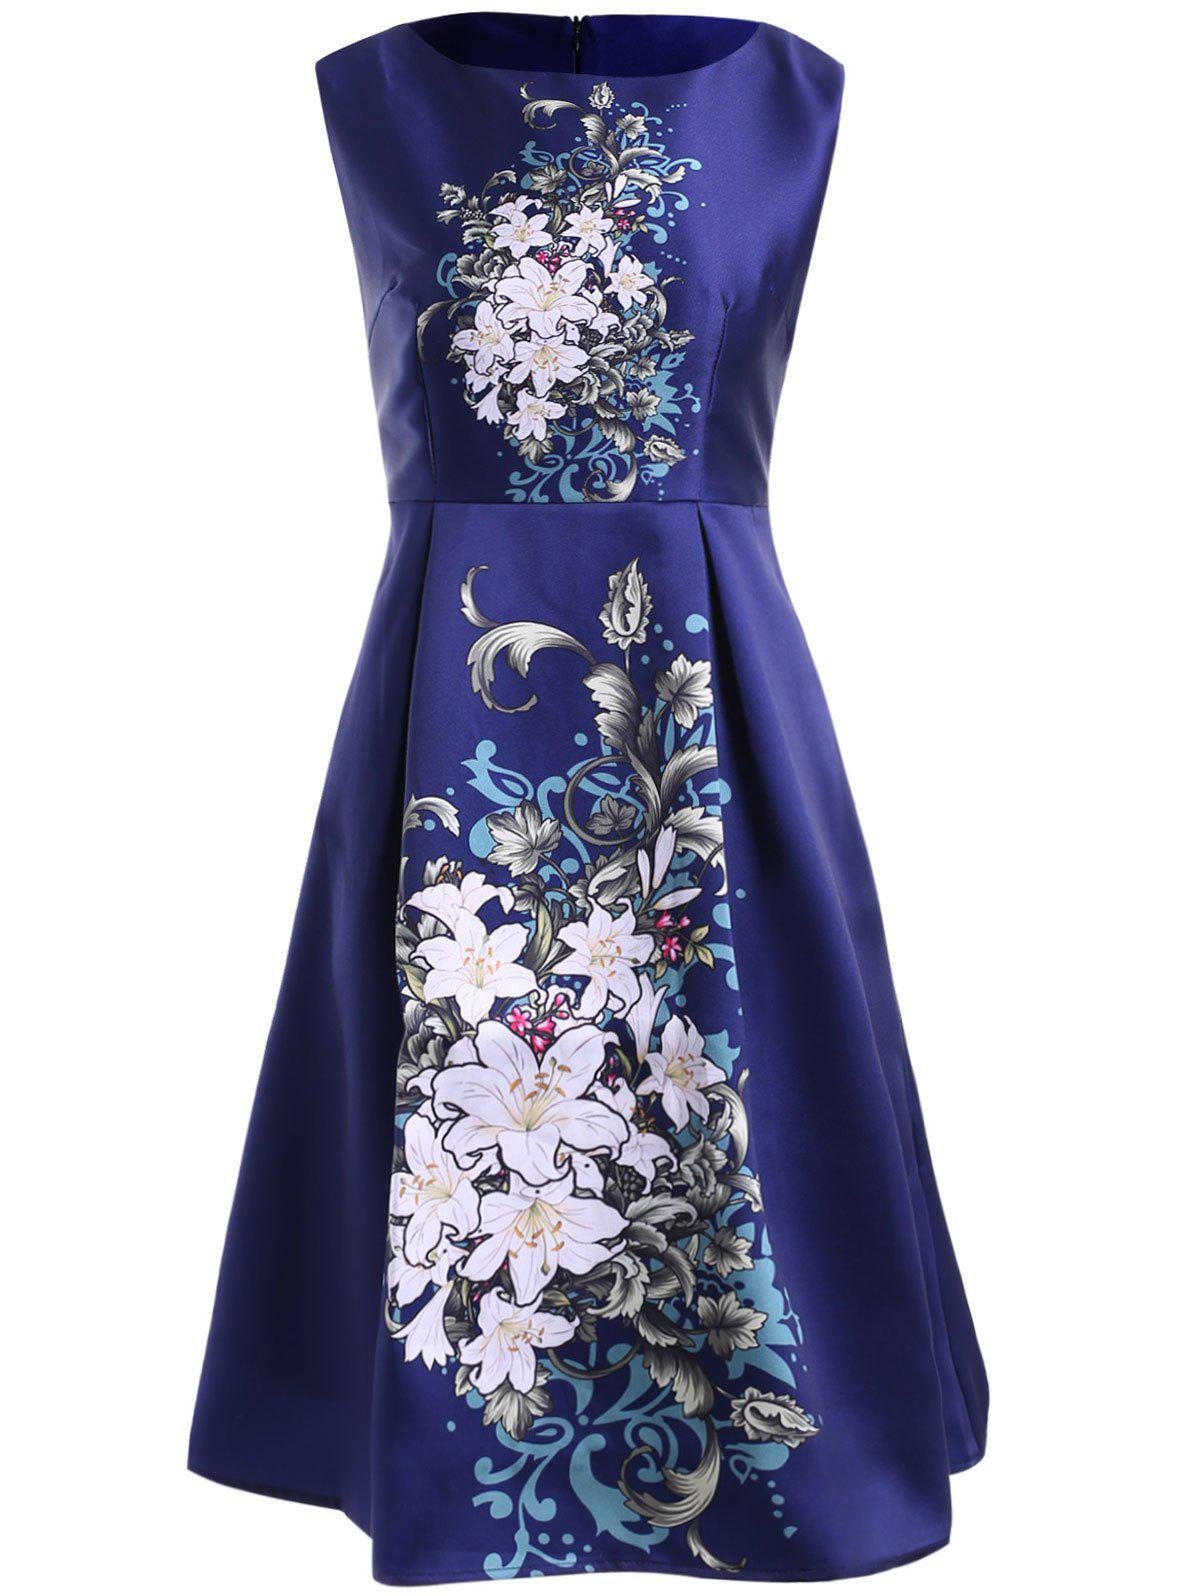 Simple Style Round Neck Sleeveless Floral Print Dress For Women цены